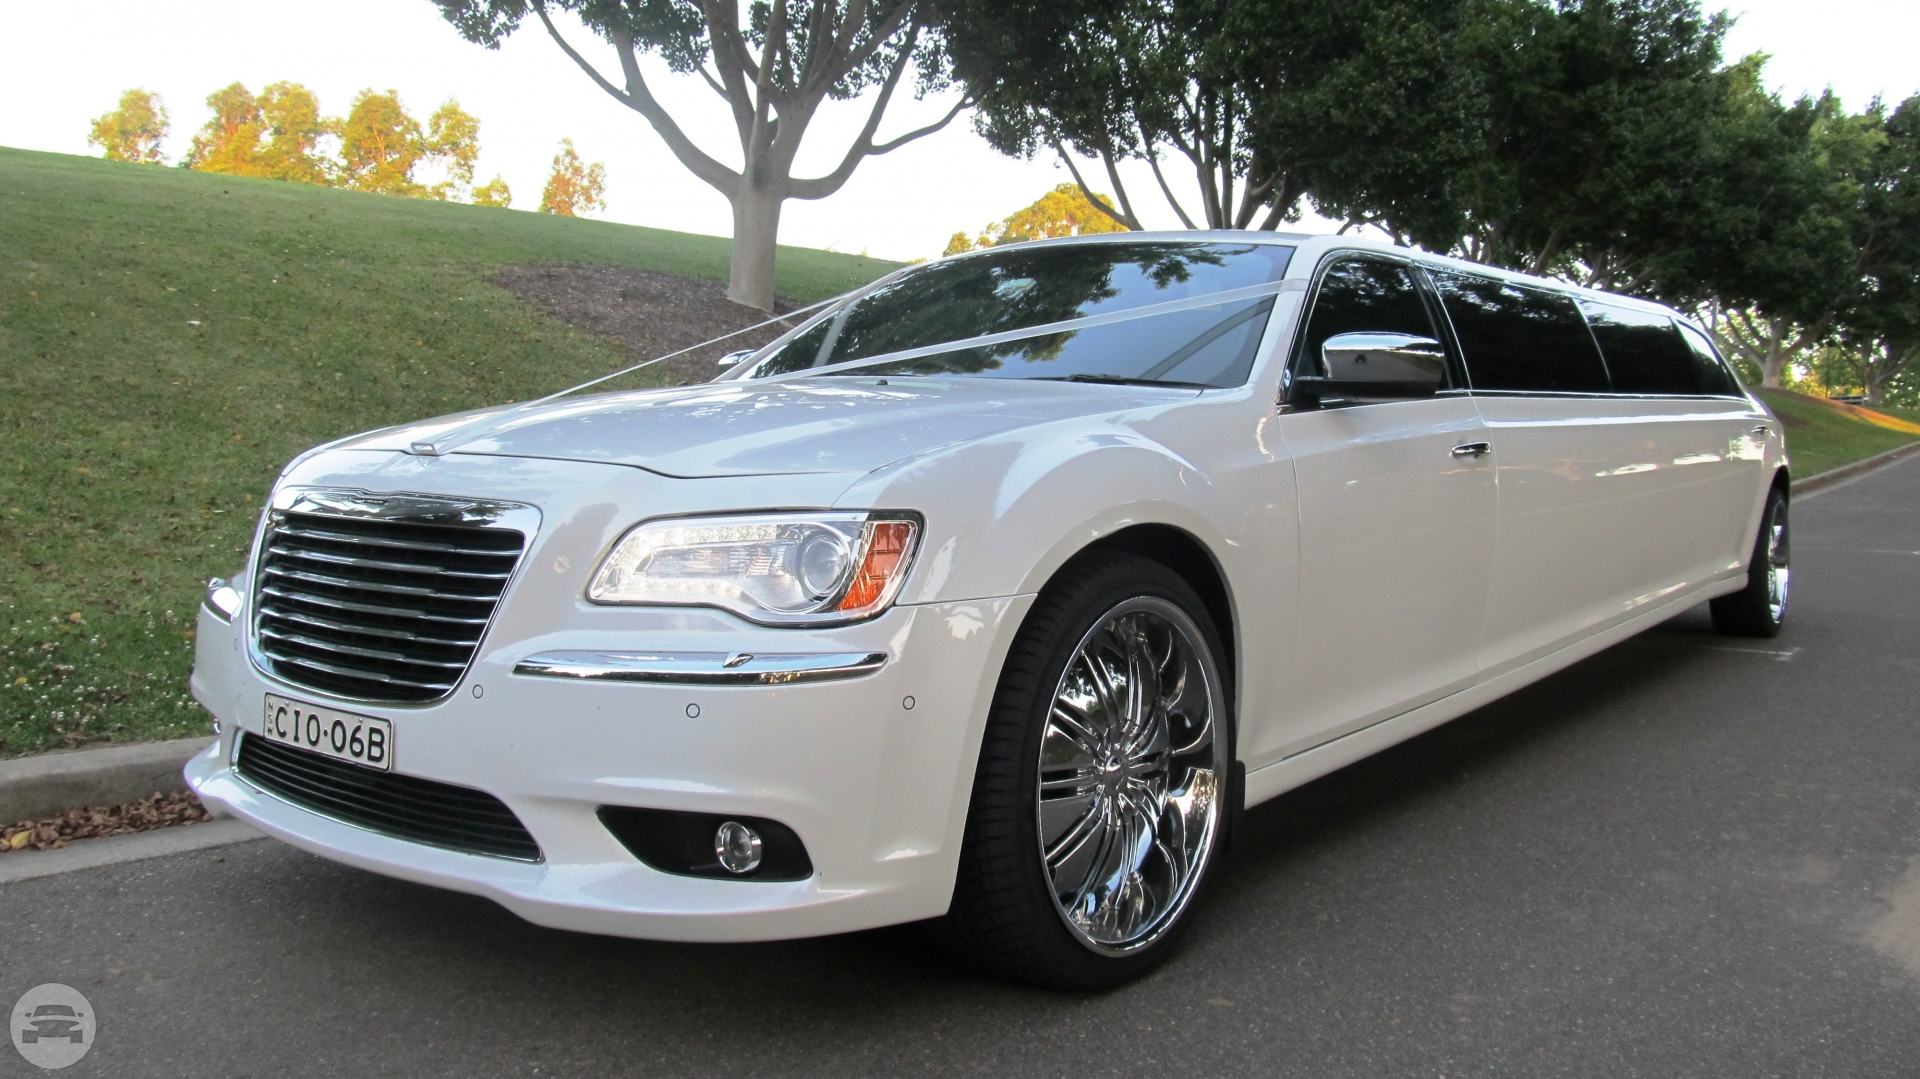 12 seater Chrysler 300C Limo / Dickson ACT 2602, Australia   / Hourly AUD$ 0.00